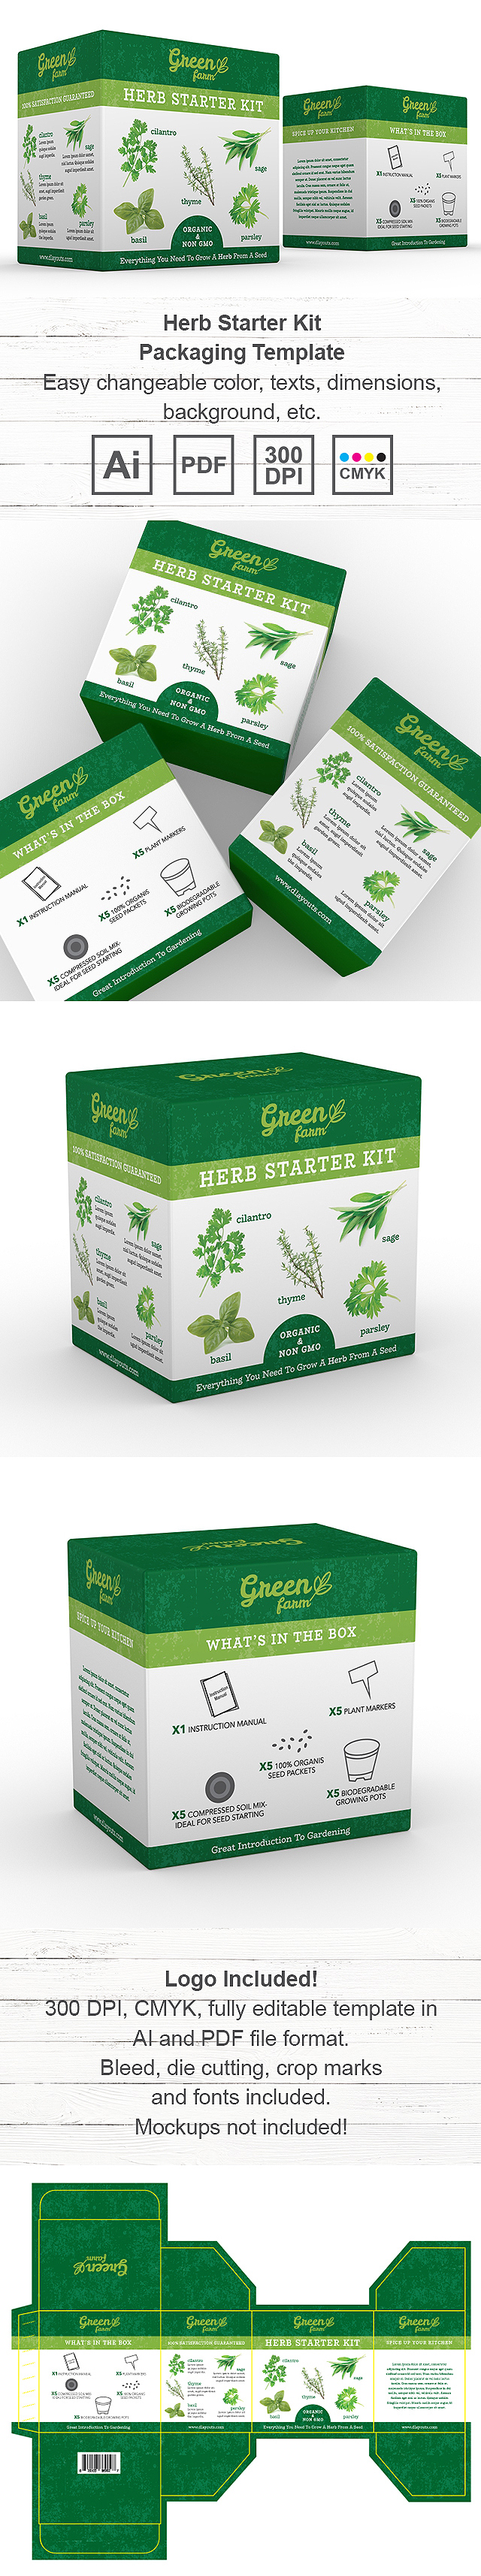 Organic Herb Growing Kit Packaging Template